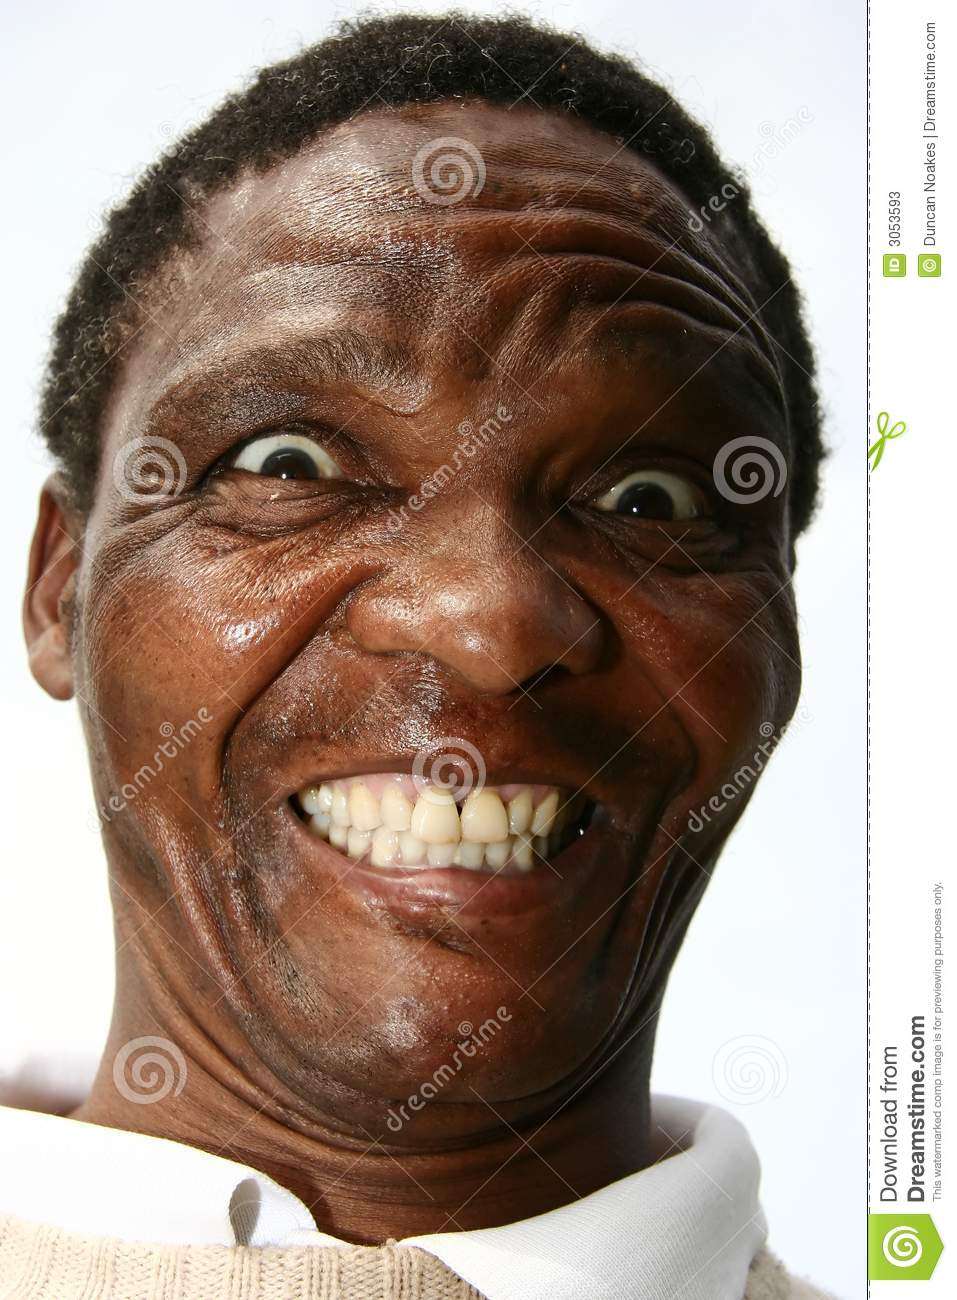 Angry Face Stock Photos - Image: 3053593 Angry Black Woman Face